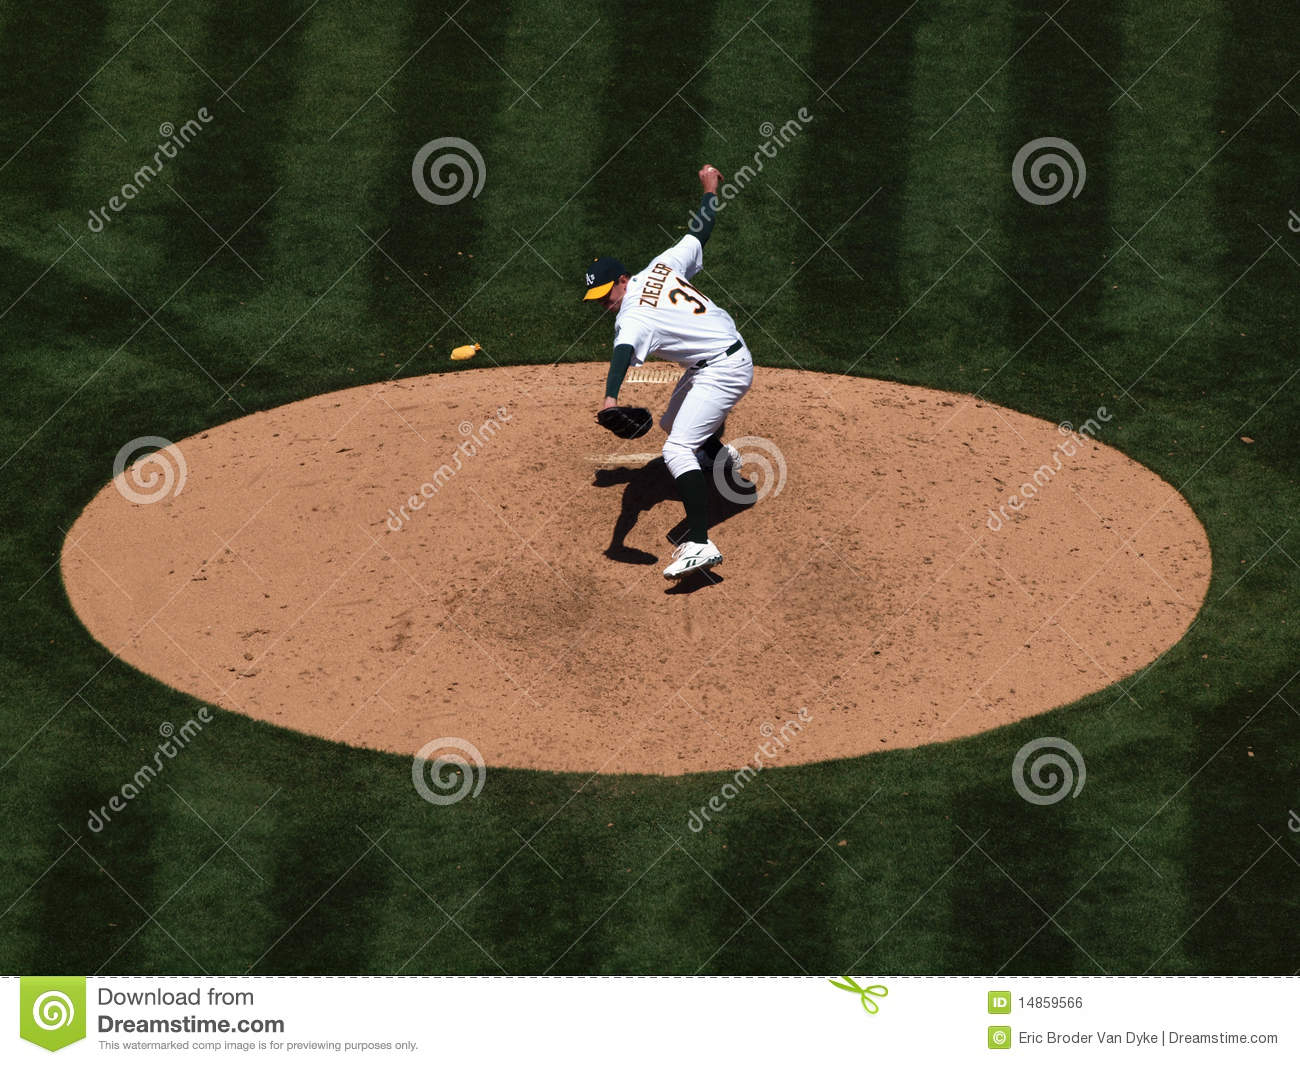 As Brad Ziegler about to throw a pitch